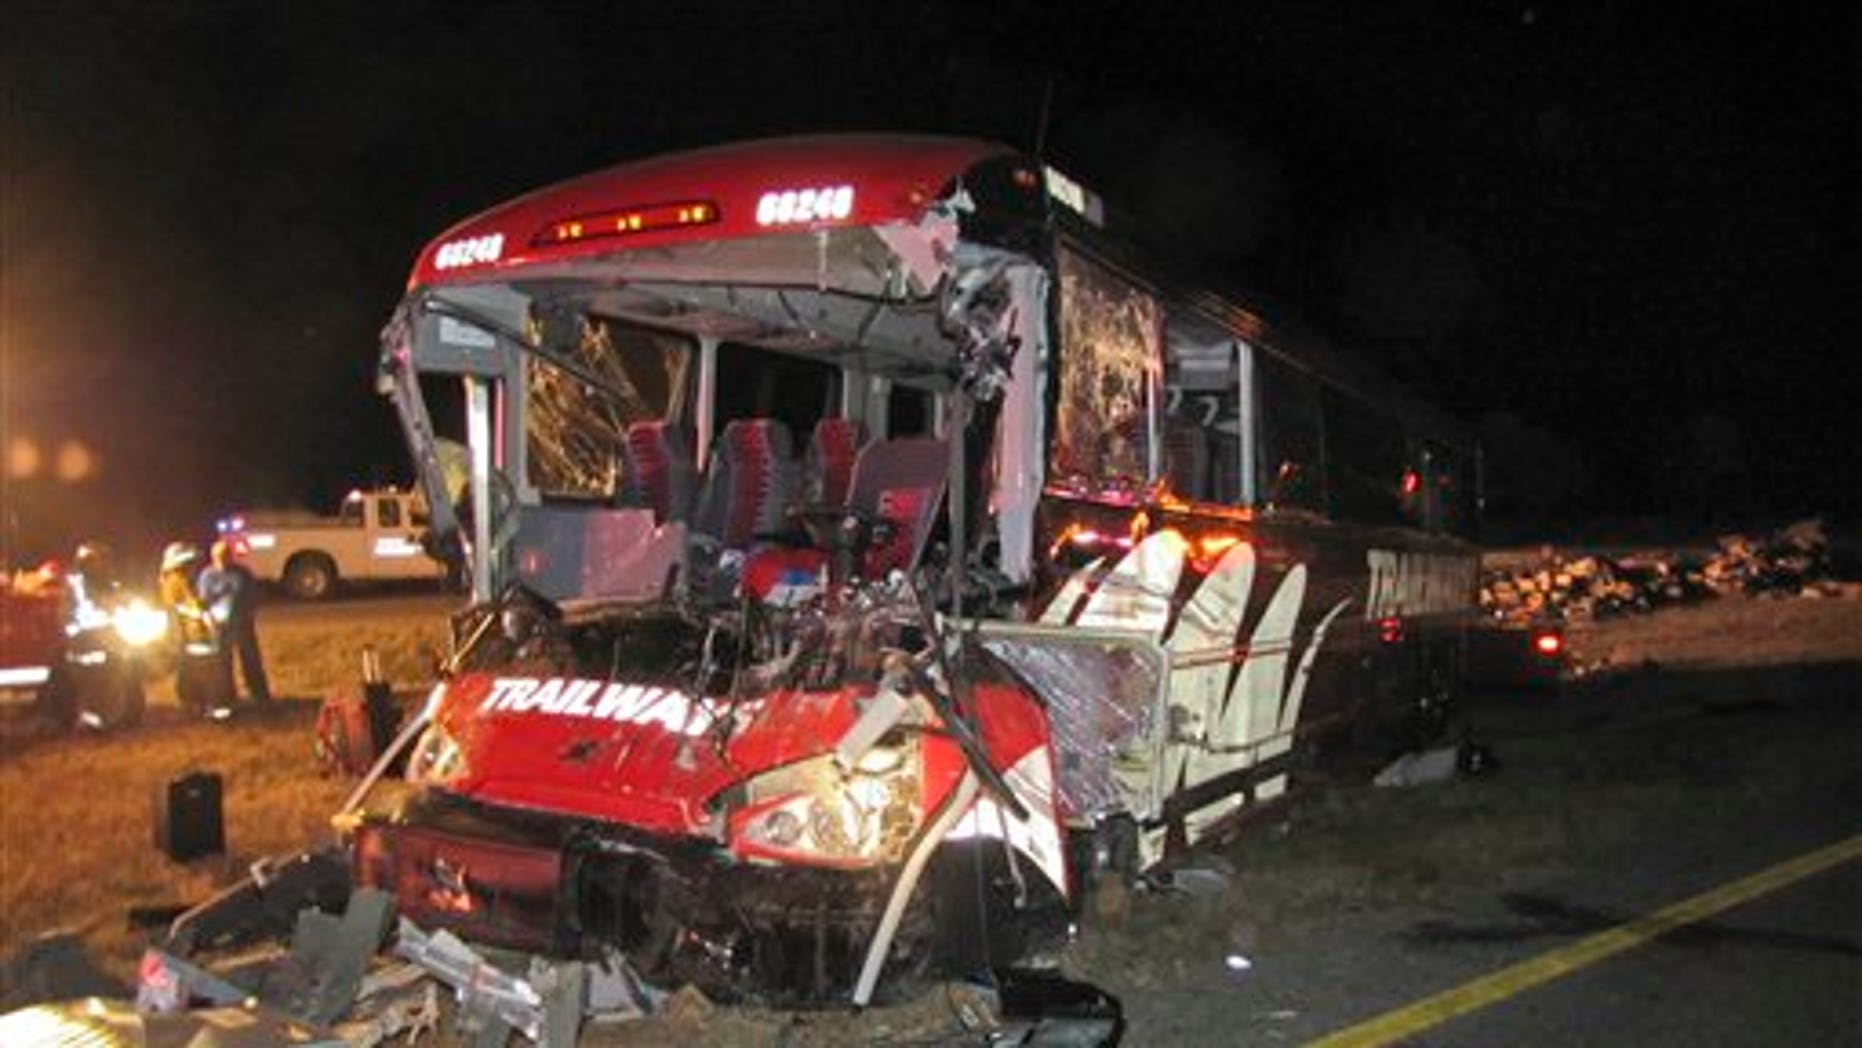 Oct. 6: This photo provided by the Nebraska State Patrol shows a Burlington Trailways bus that crashed into a semi on Interstate 80 near Gibbon, Neb. Five people were treated at hospital after the Denver-bound bus rammed into an overturned semitrailer on Interstate 80 near Gibbon, Neb., early Thursday.